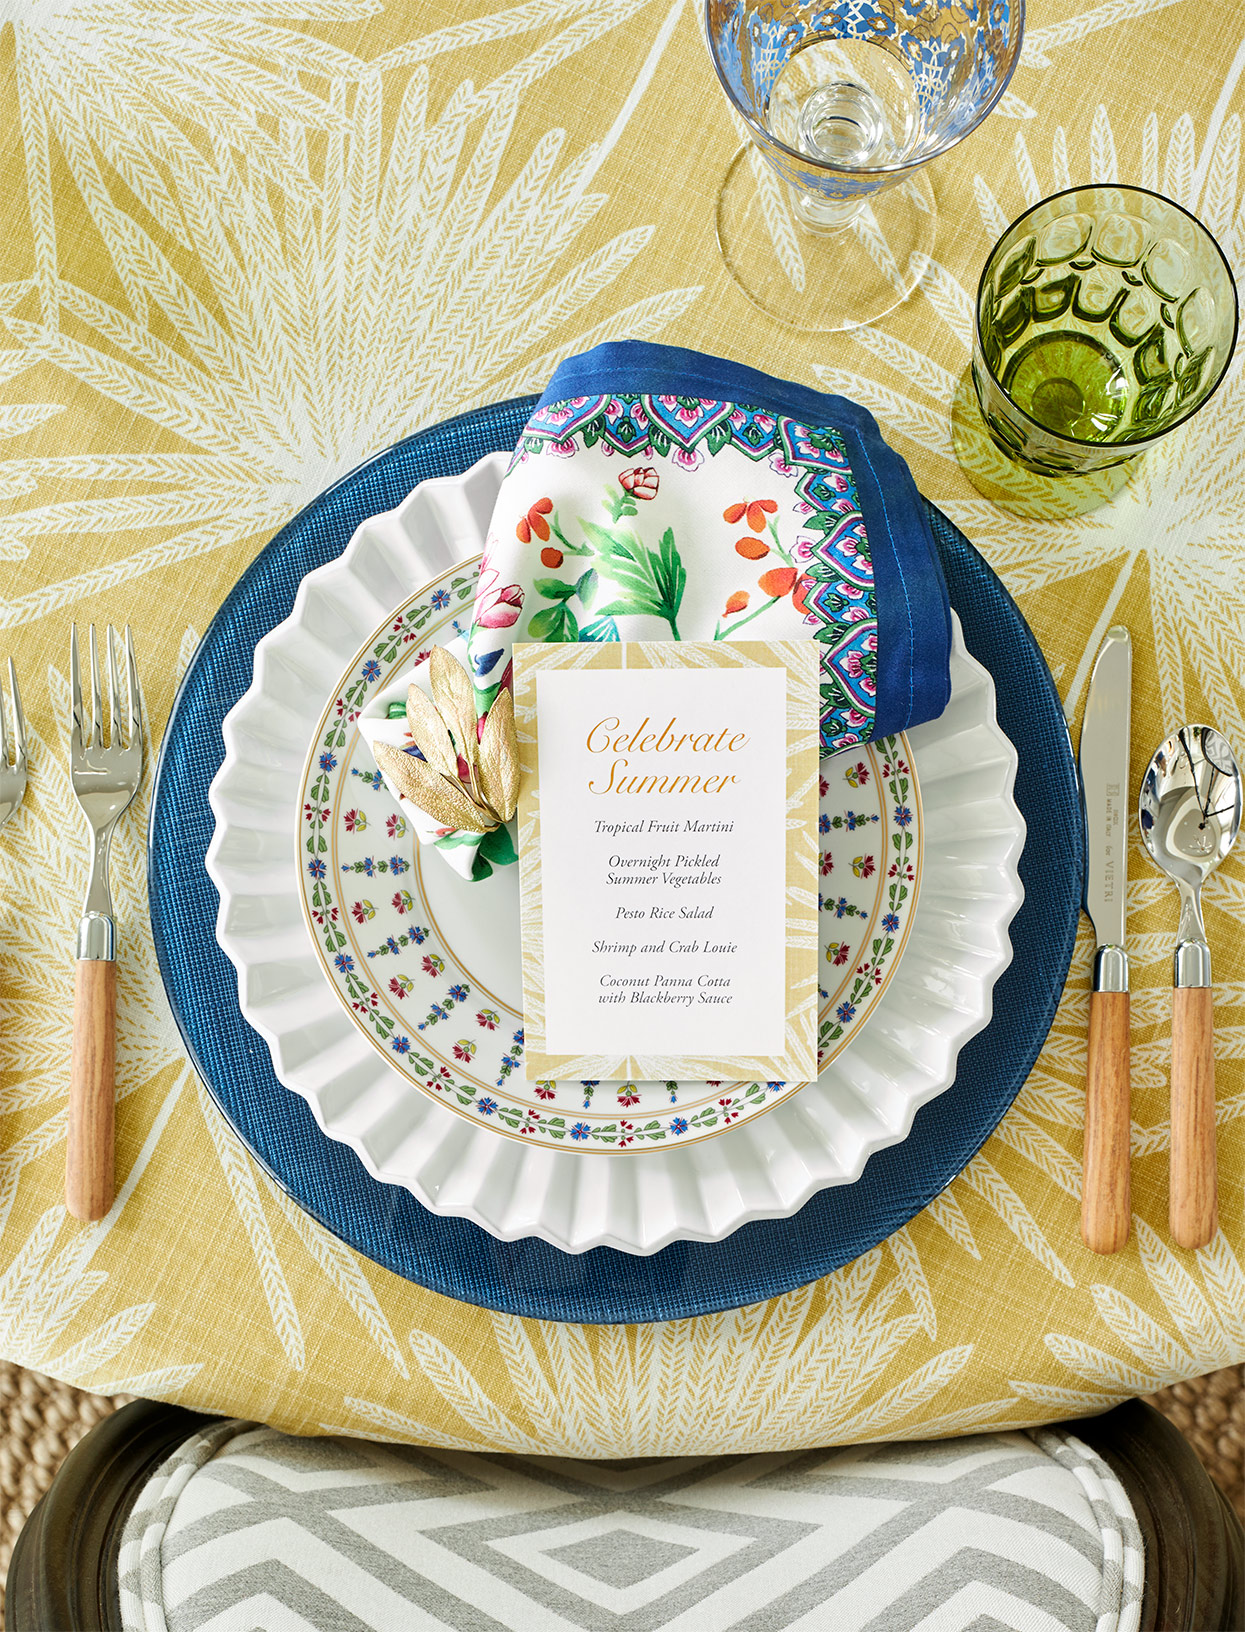 summer menu on plate for bright place setting